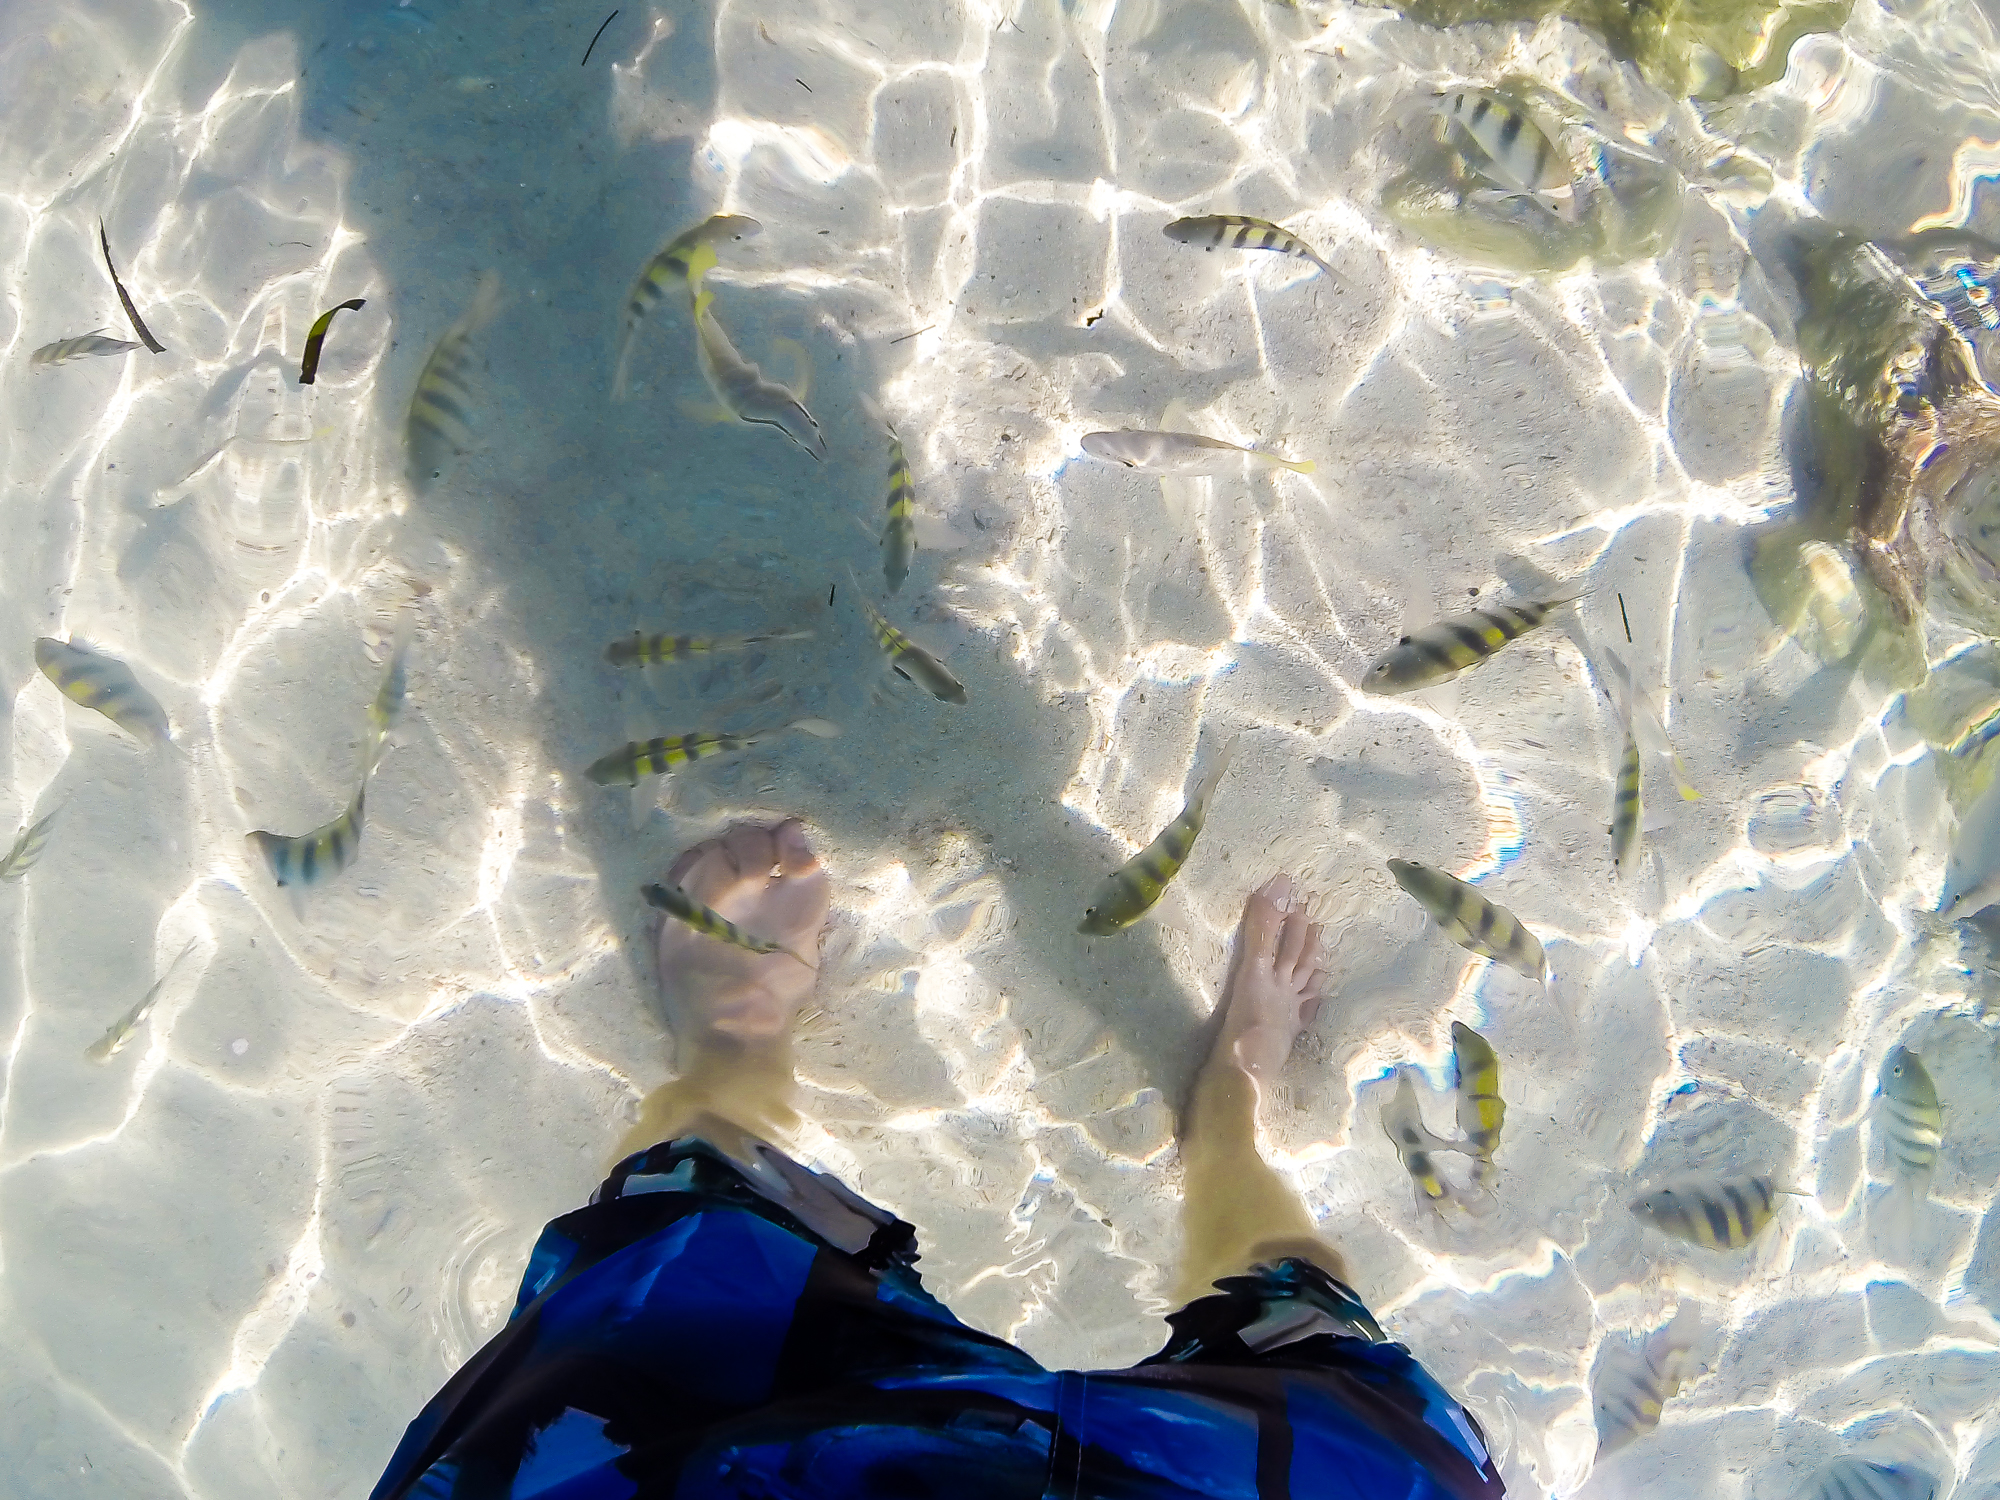 GETTING SURROUNDED BY THE FRIENDLY FISH